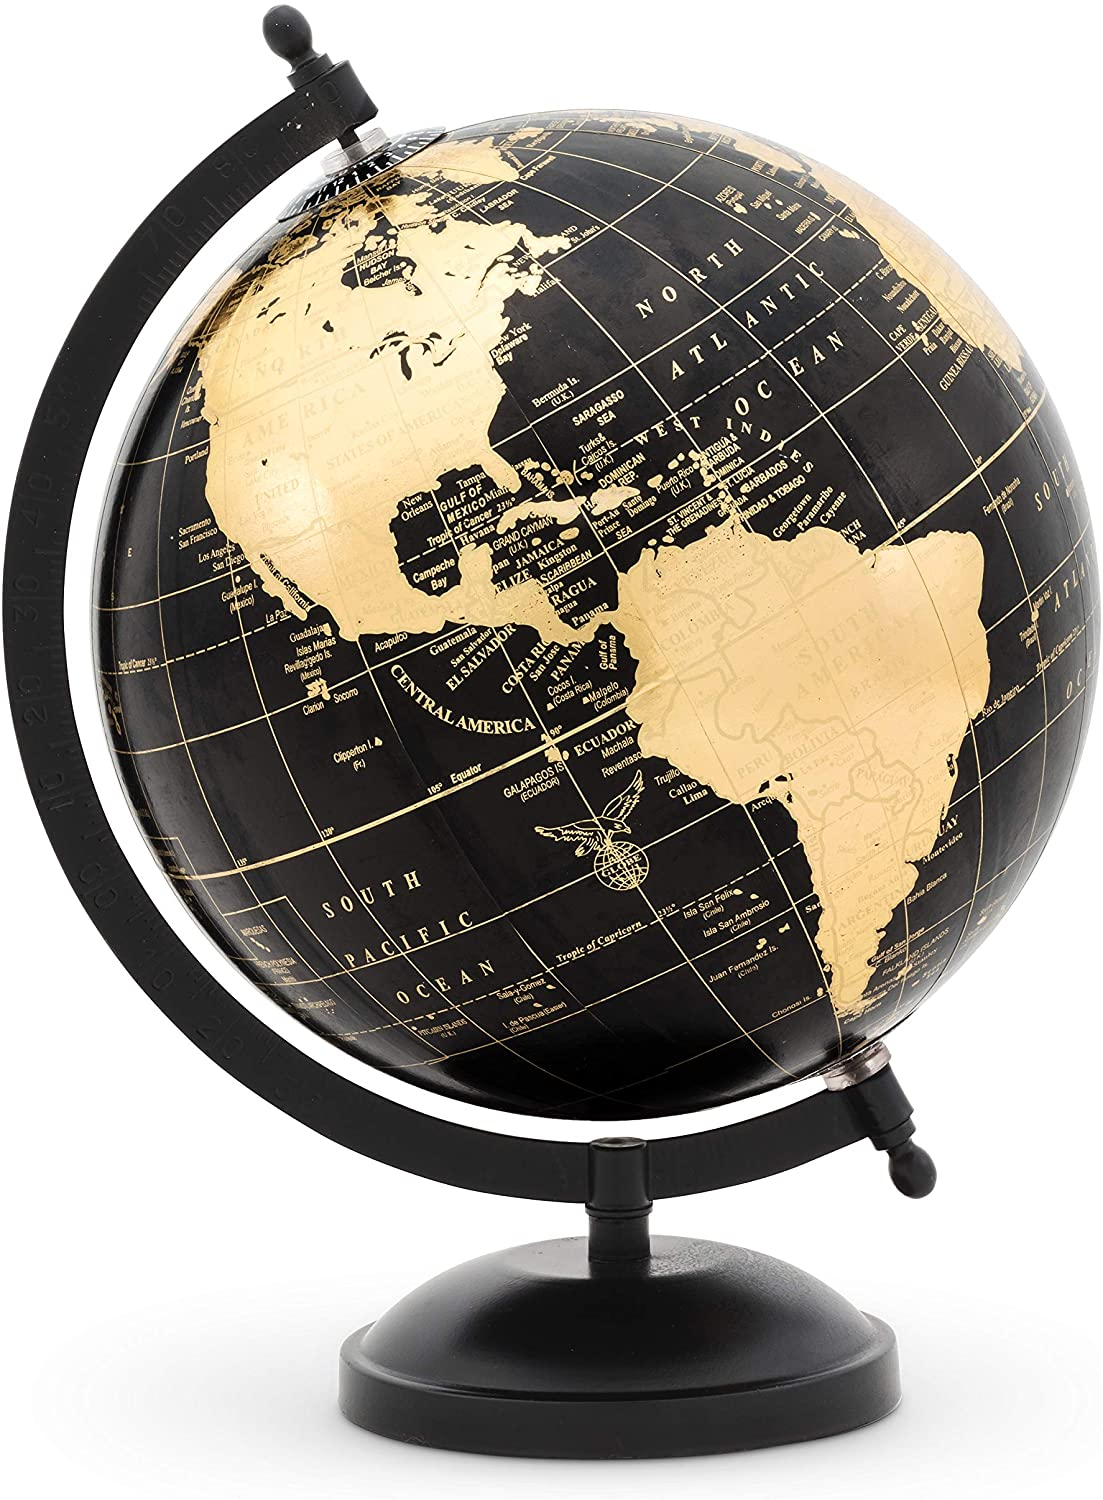 Abbott Collection 57-LATITUDE-10 Globe on Stand-Blk/Gold-11 H, Black/Gold